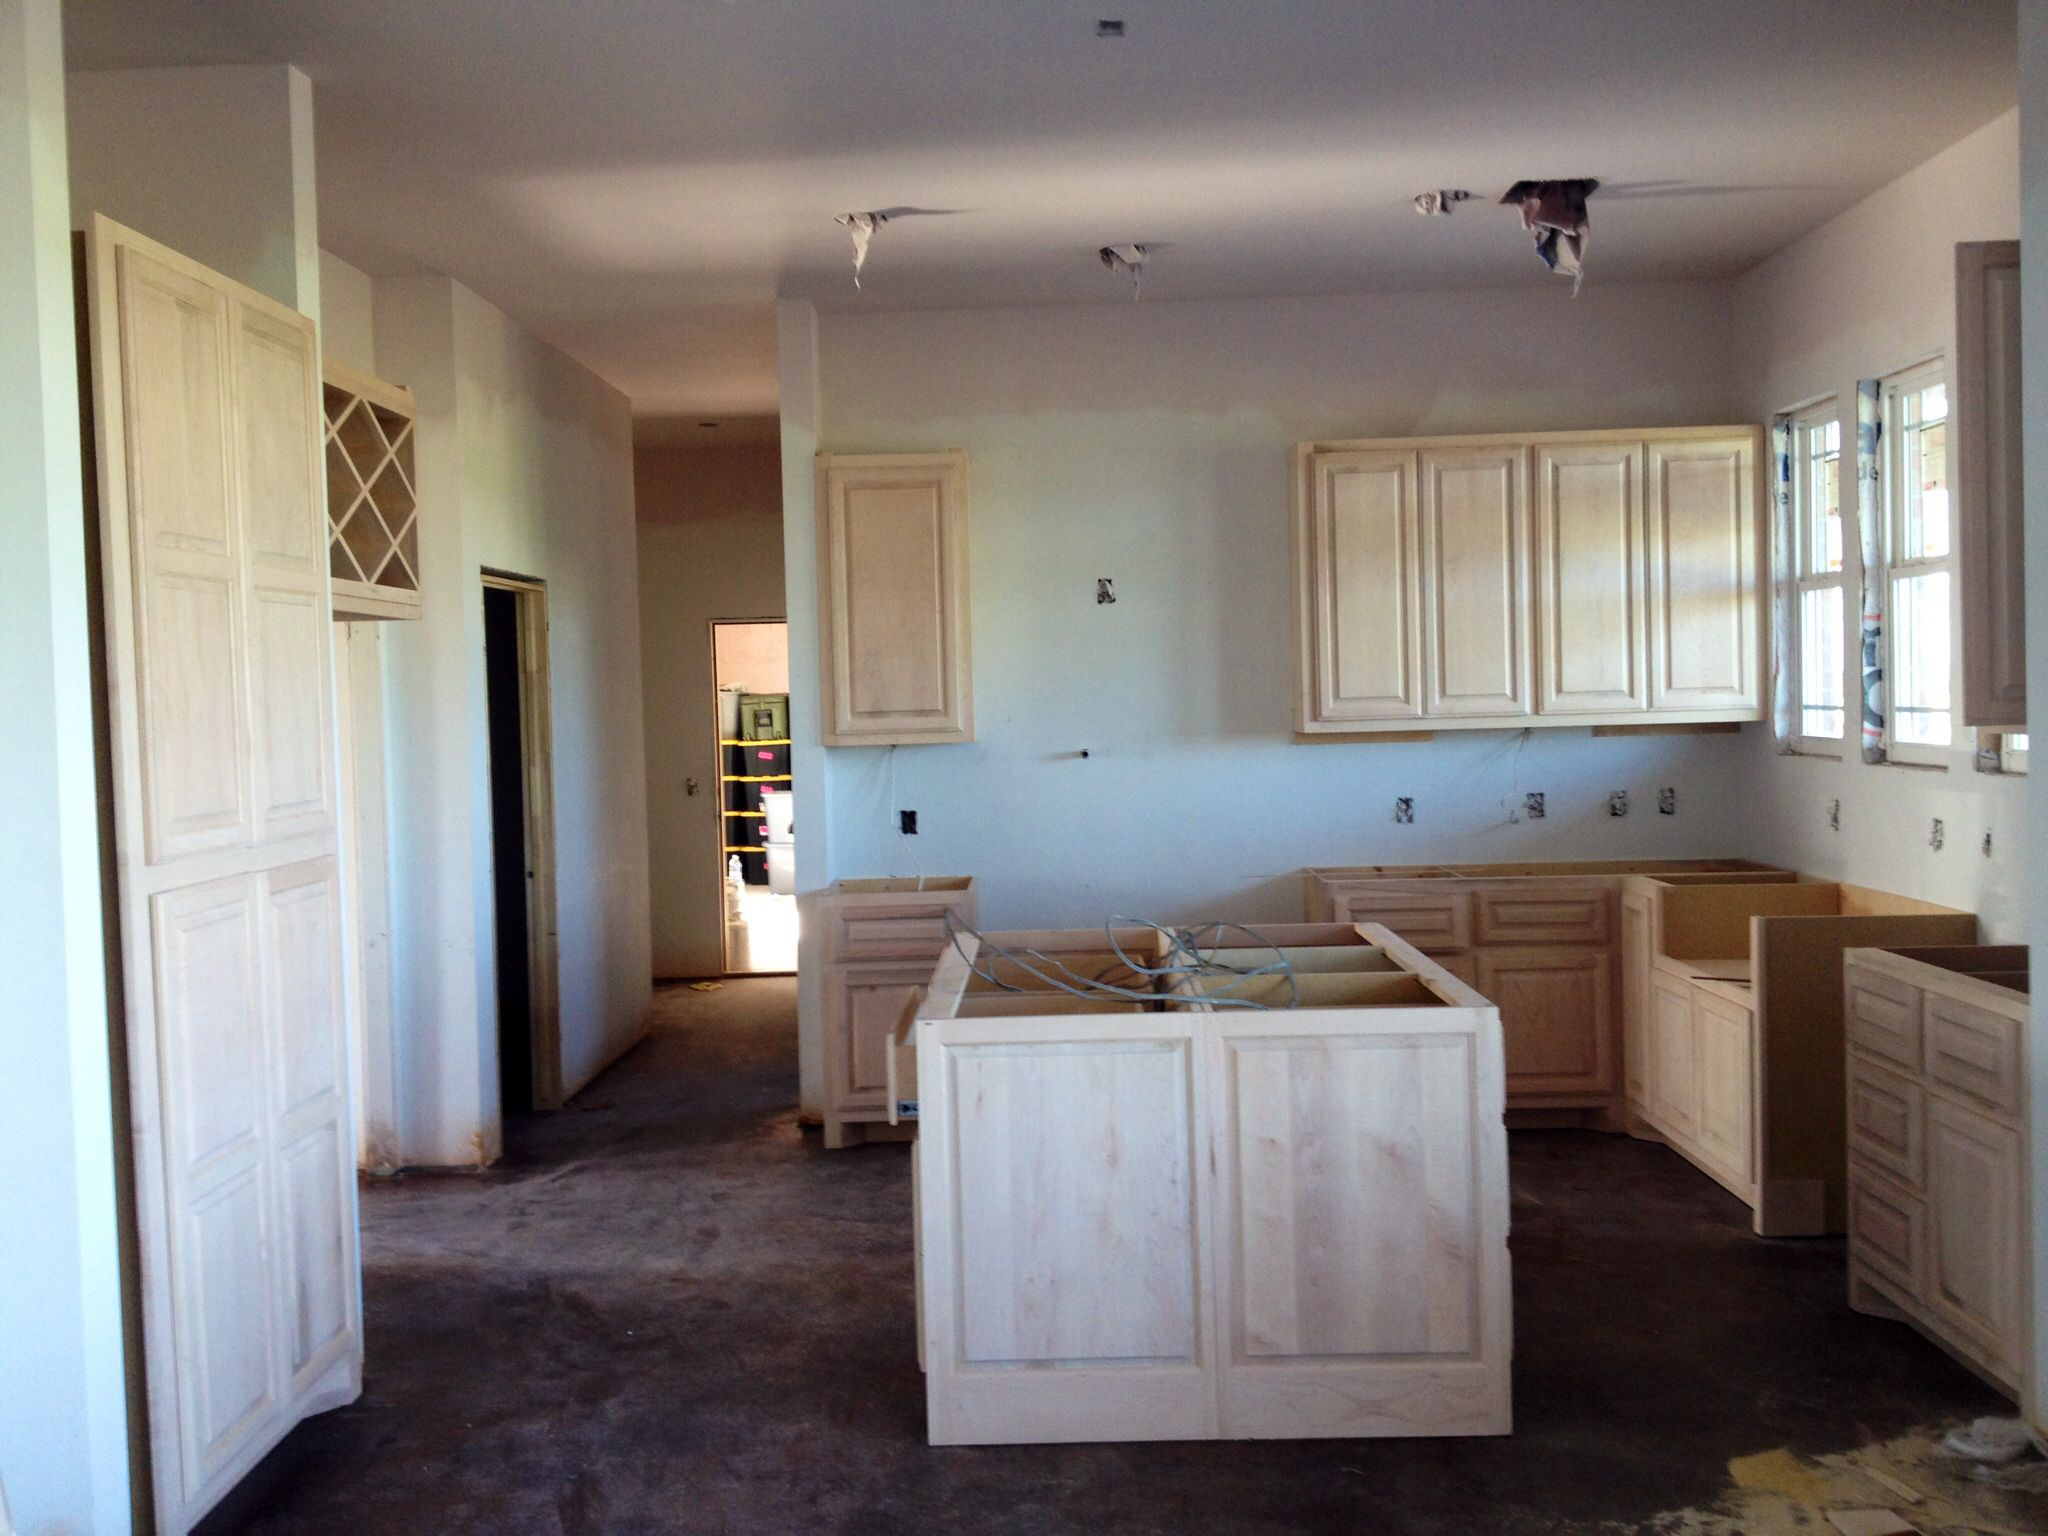 Unfinished kitchen cabinets, being painted now. (With ...